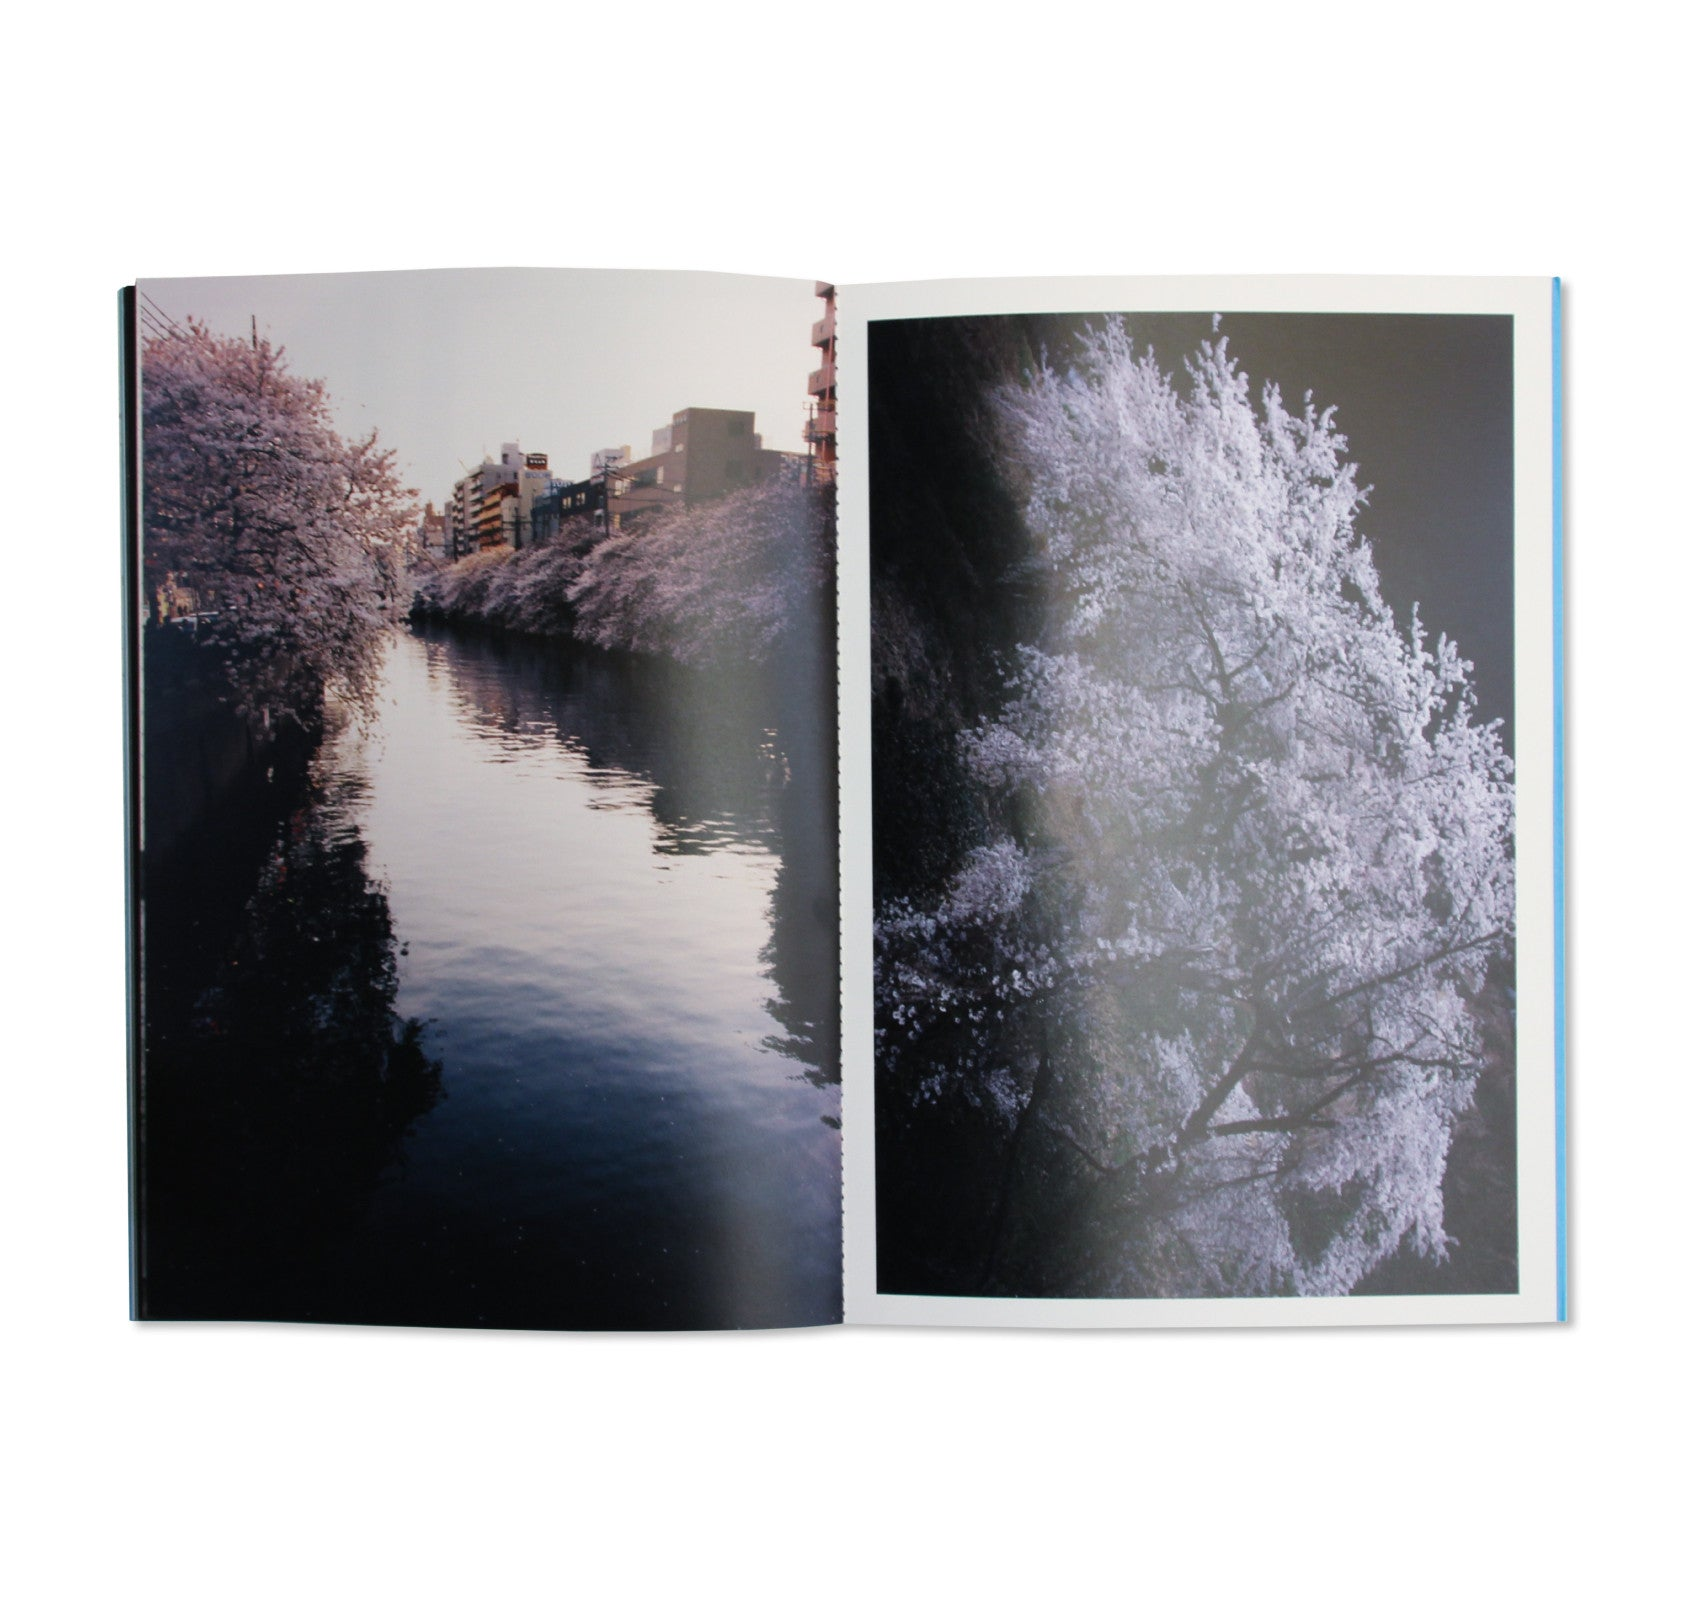 DROP OF LIGHT TO RUSHING WATER by Keiko Nomura [SIGNED]